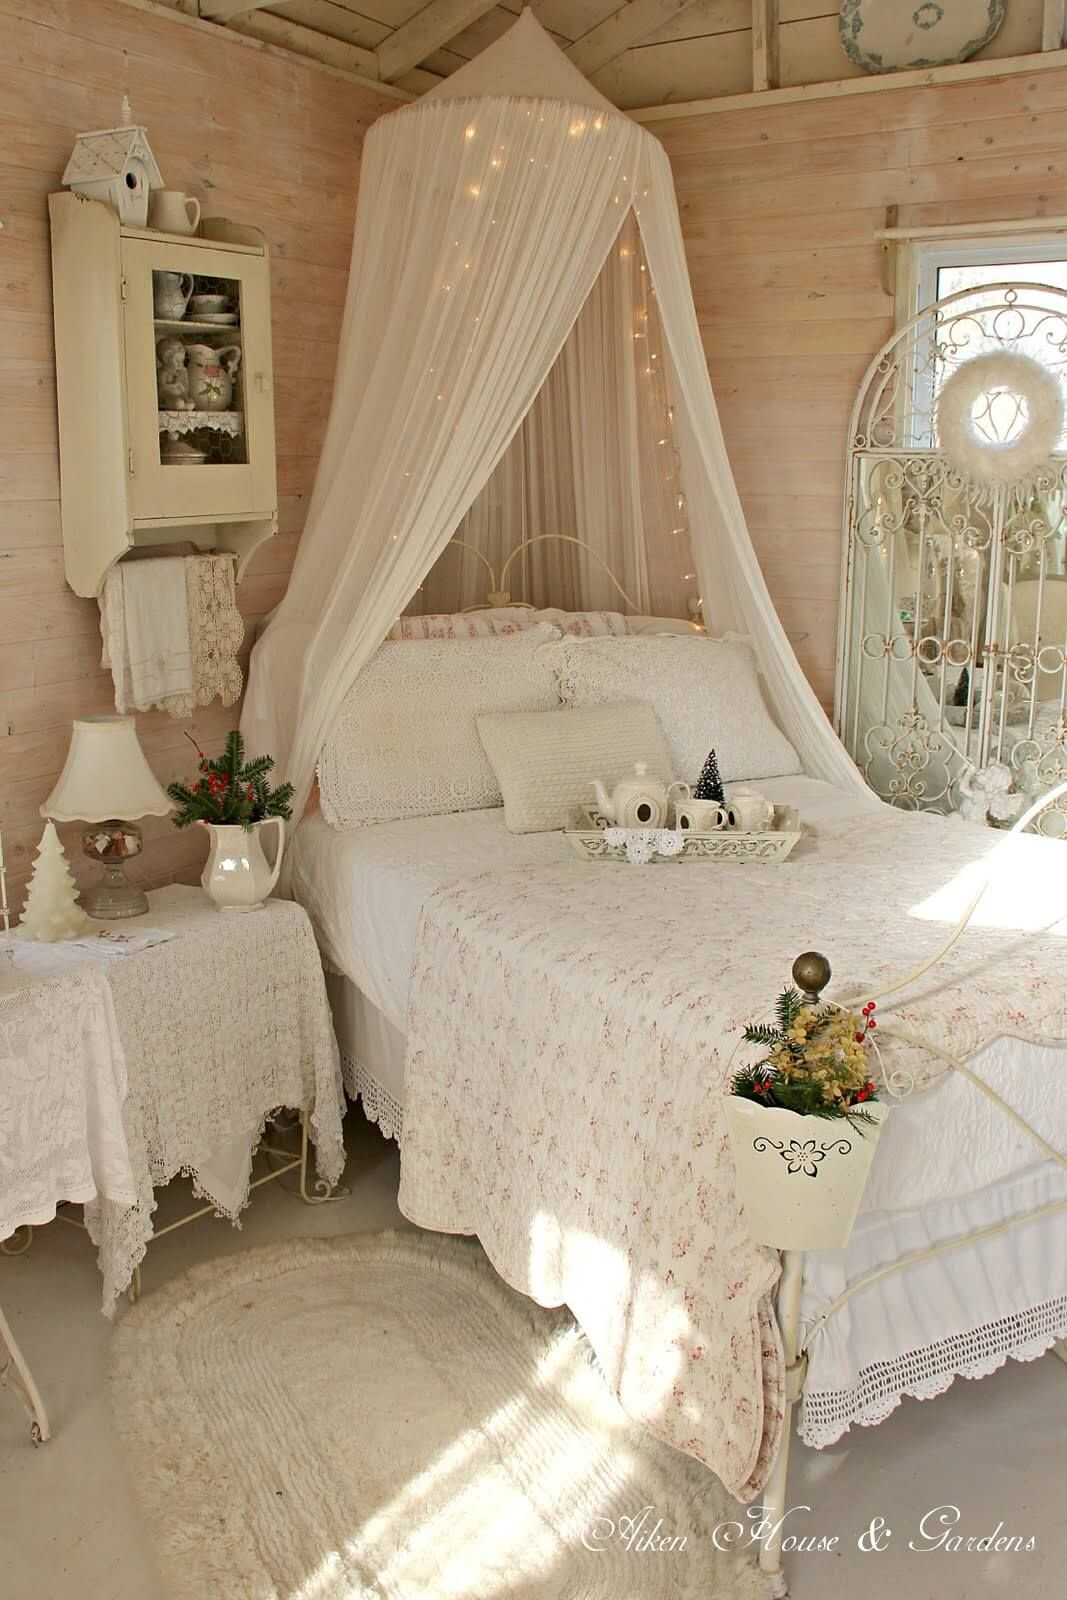 Bed canopy with lights - Mosquito Net Bed Canopy With Fairy Lights